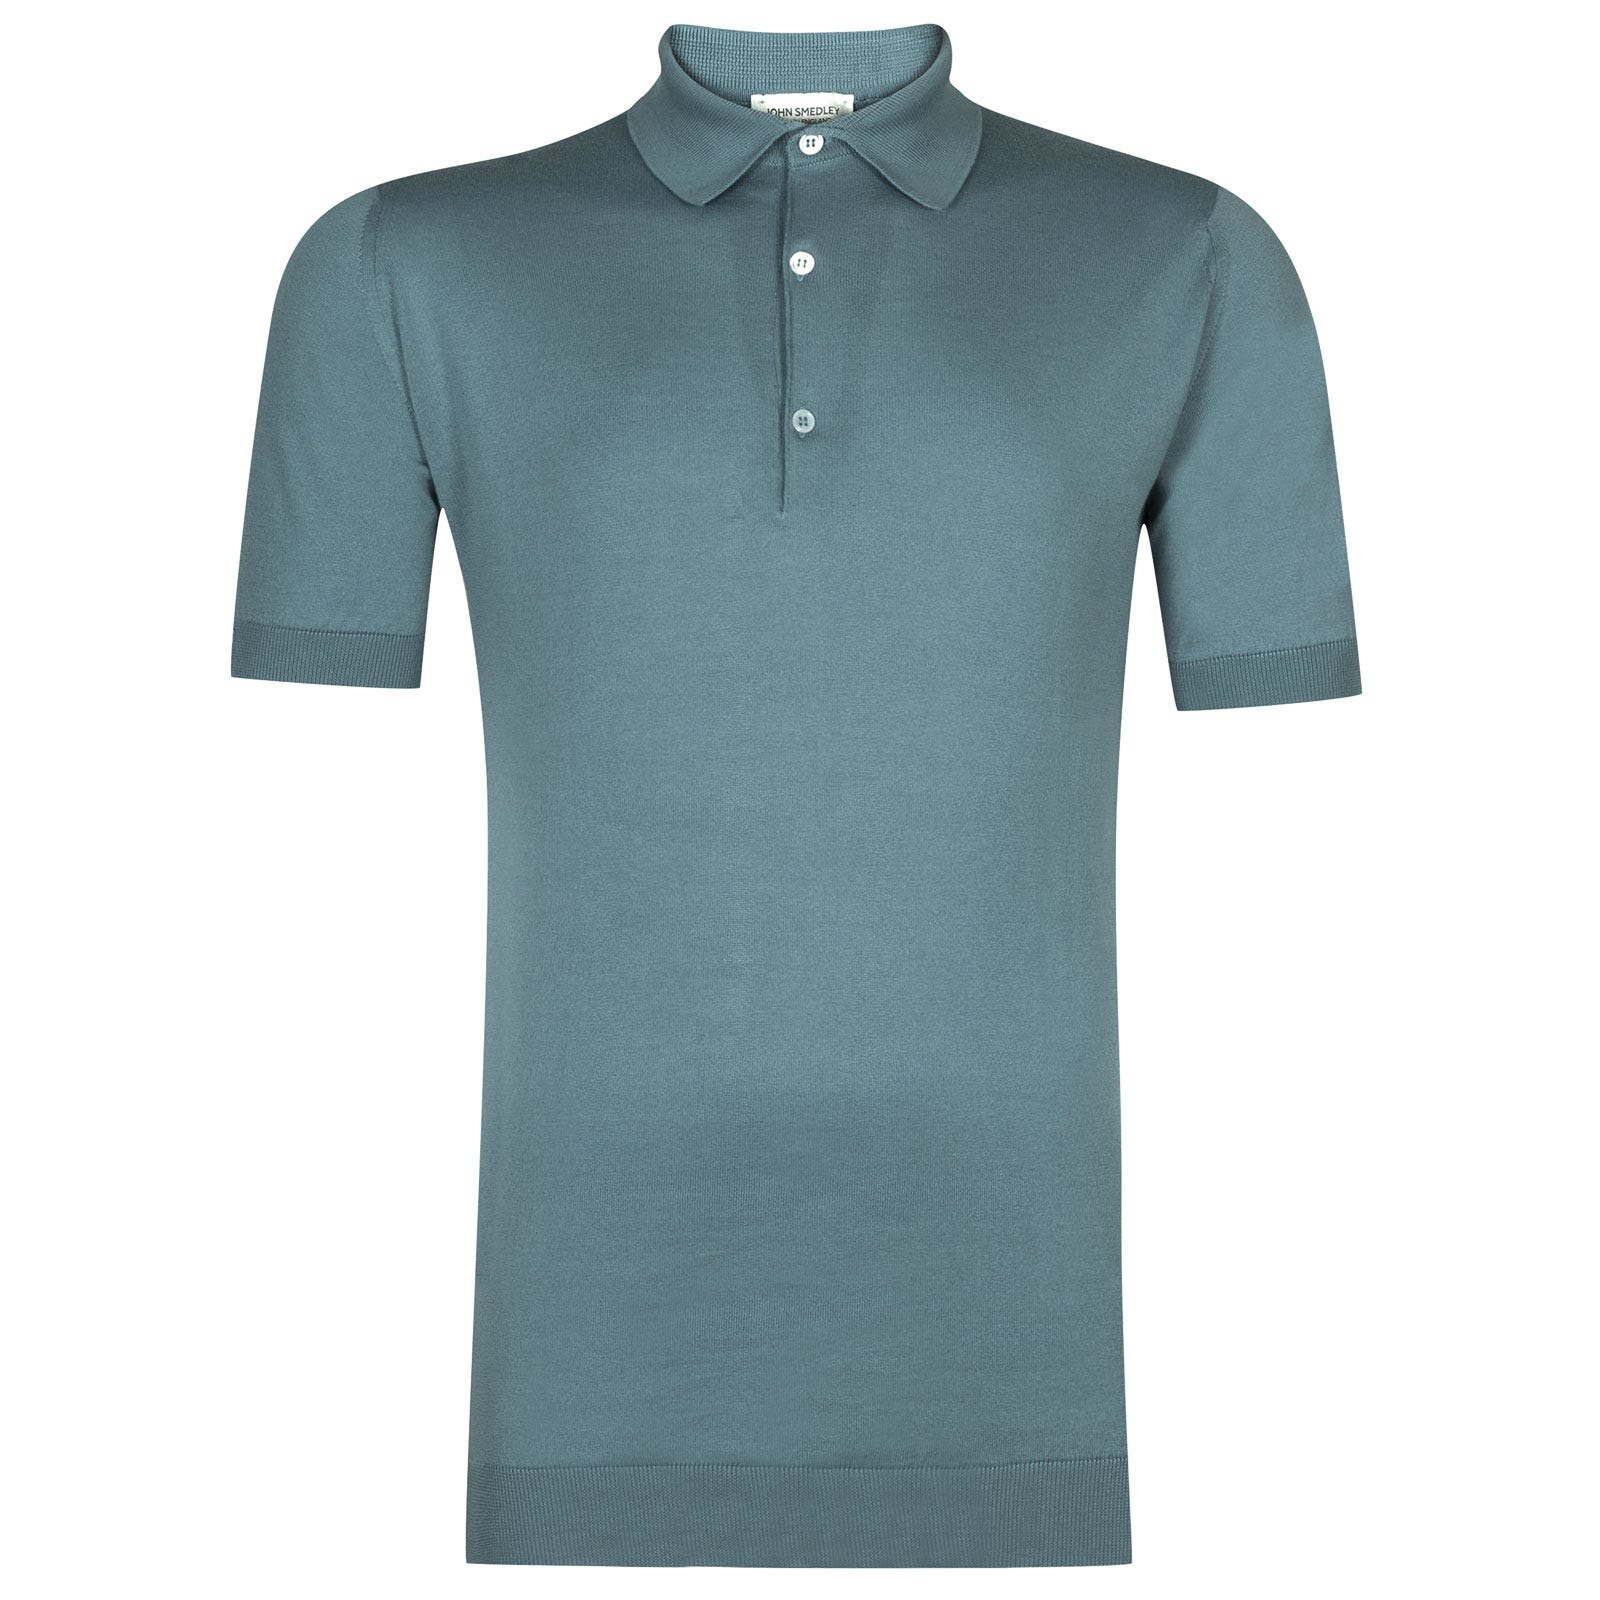 John Smedley adrian Sea Island Cotton Shirt in Summit Blue-L